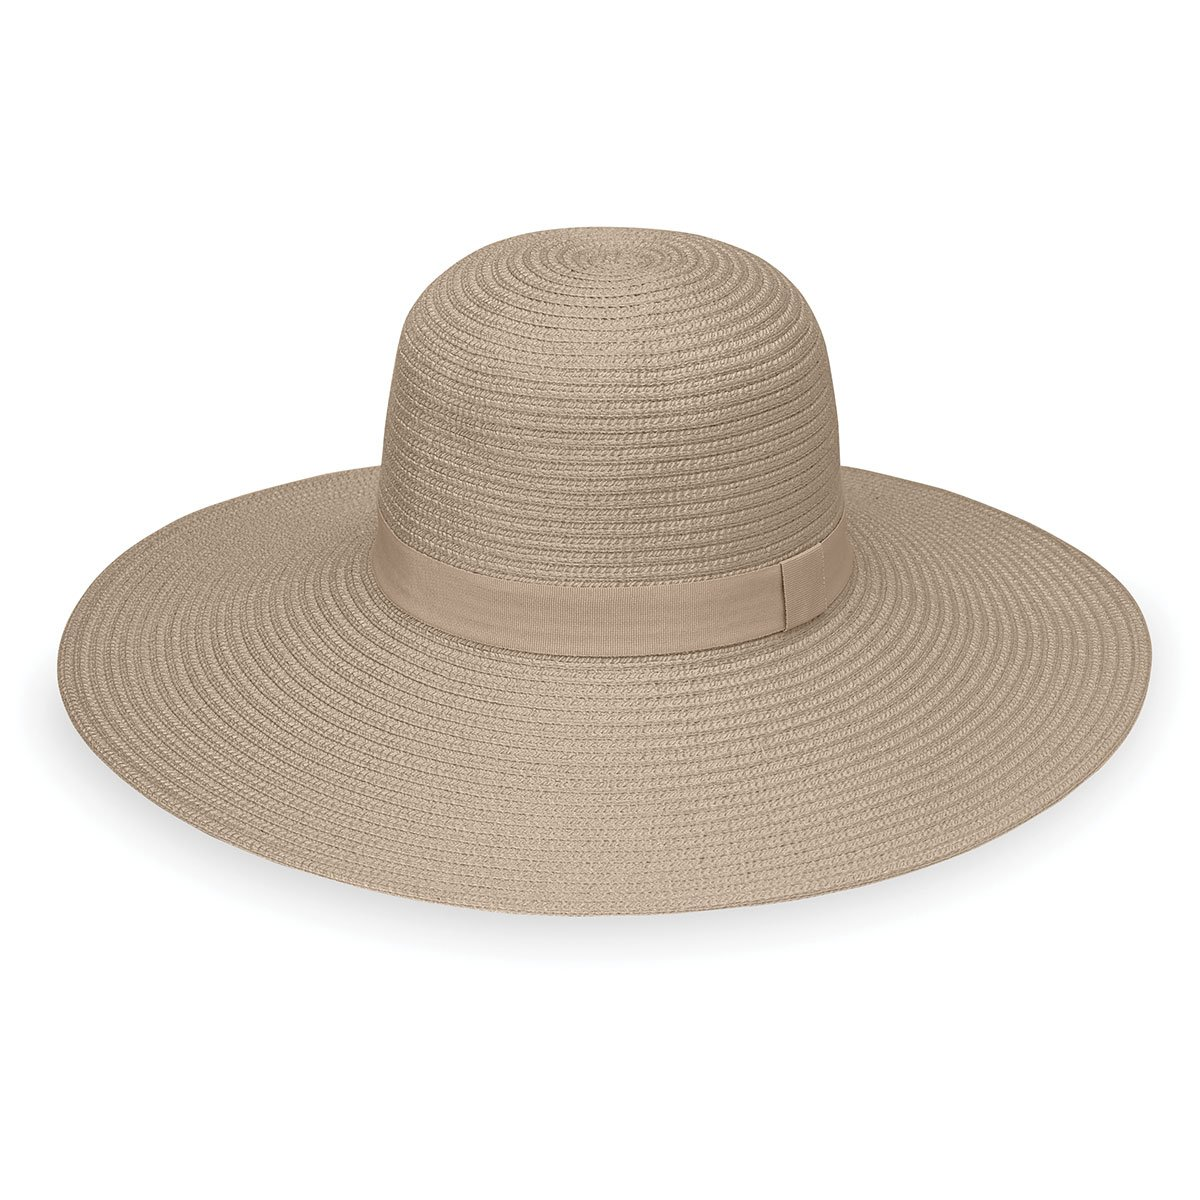 Wallaroo Hat Company Women's W Collection Aria Hat - UPF 50+ - Packable, Taupe